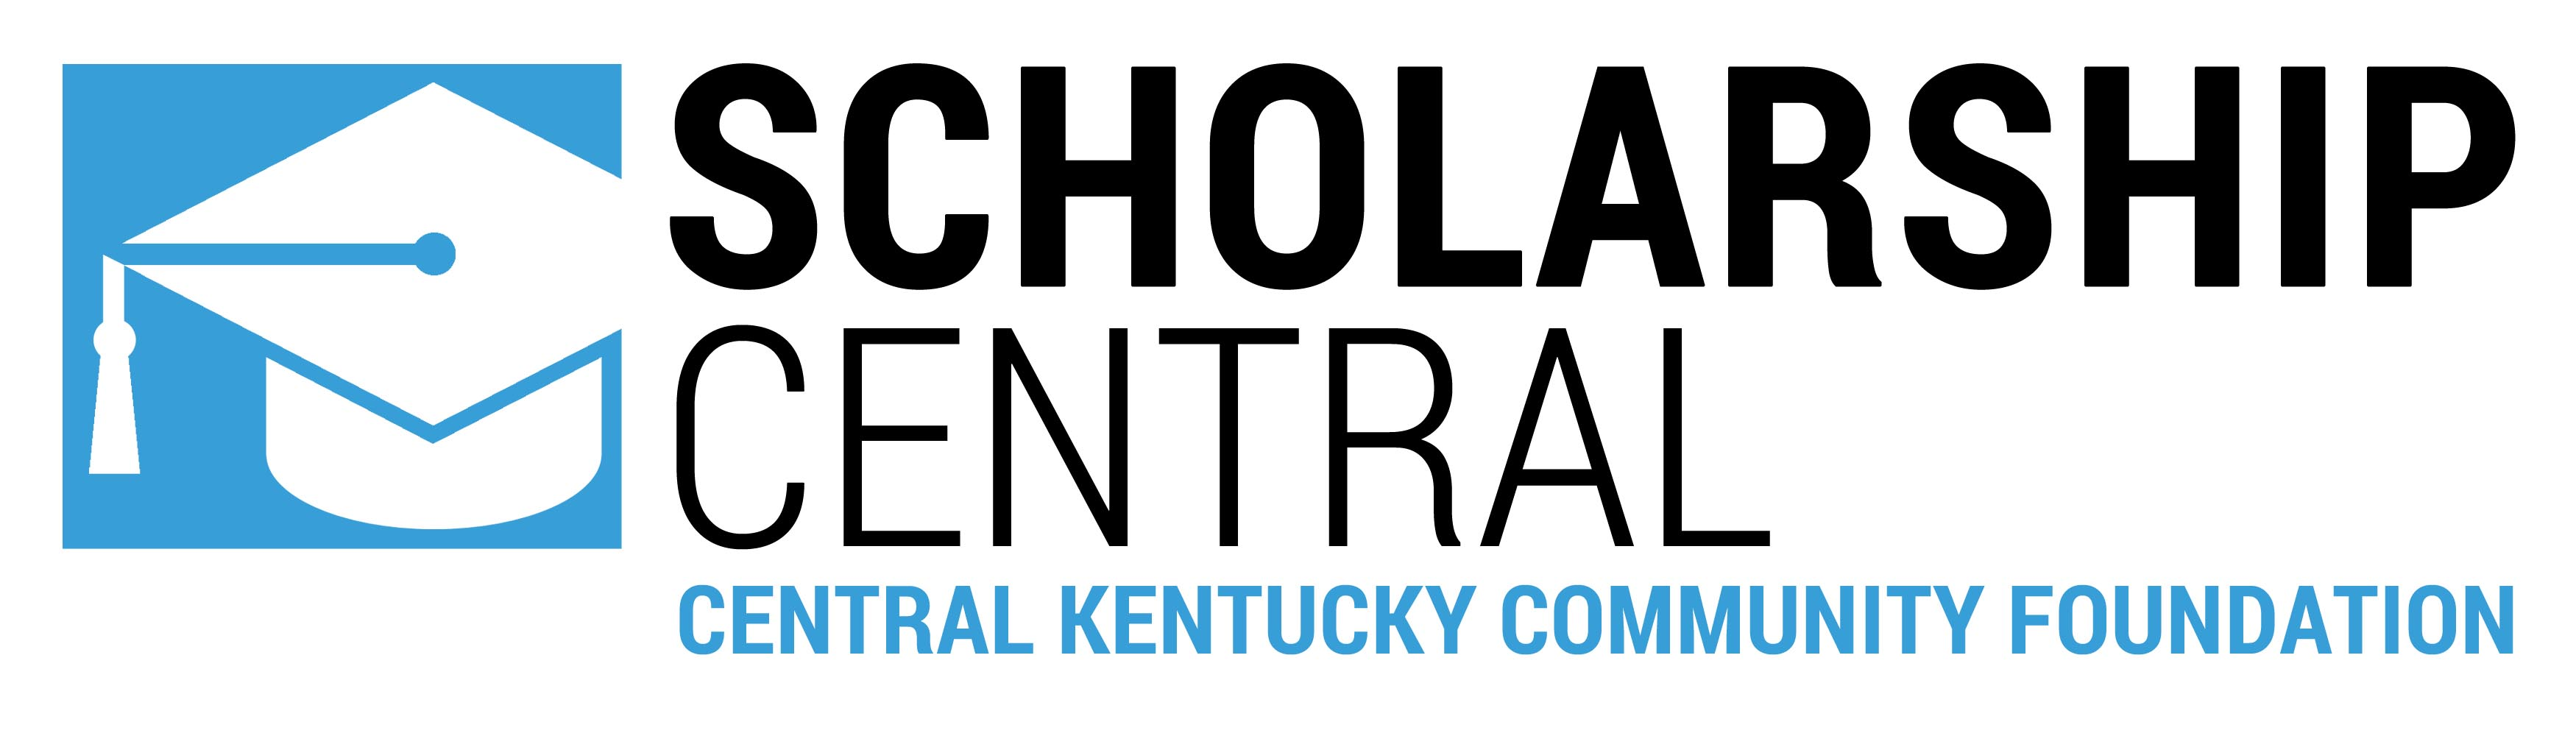 Scholarship Central, Central Kentucky Community Foundation logo